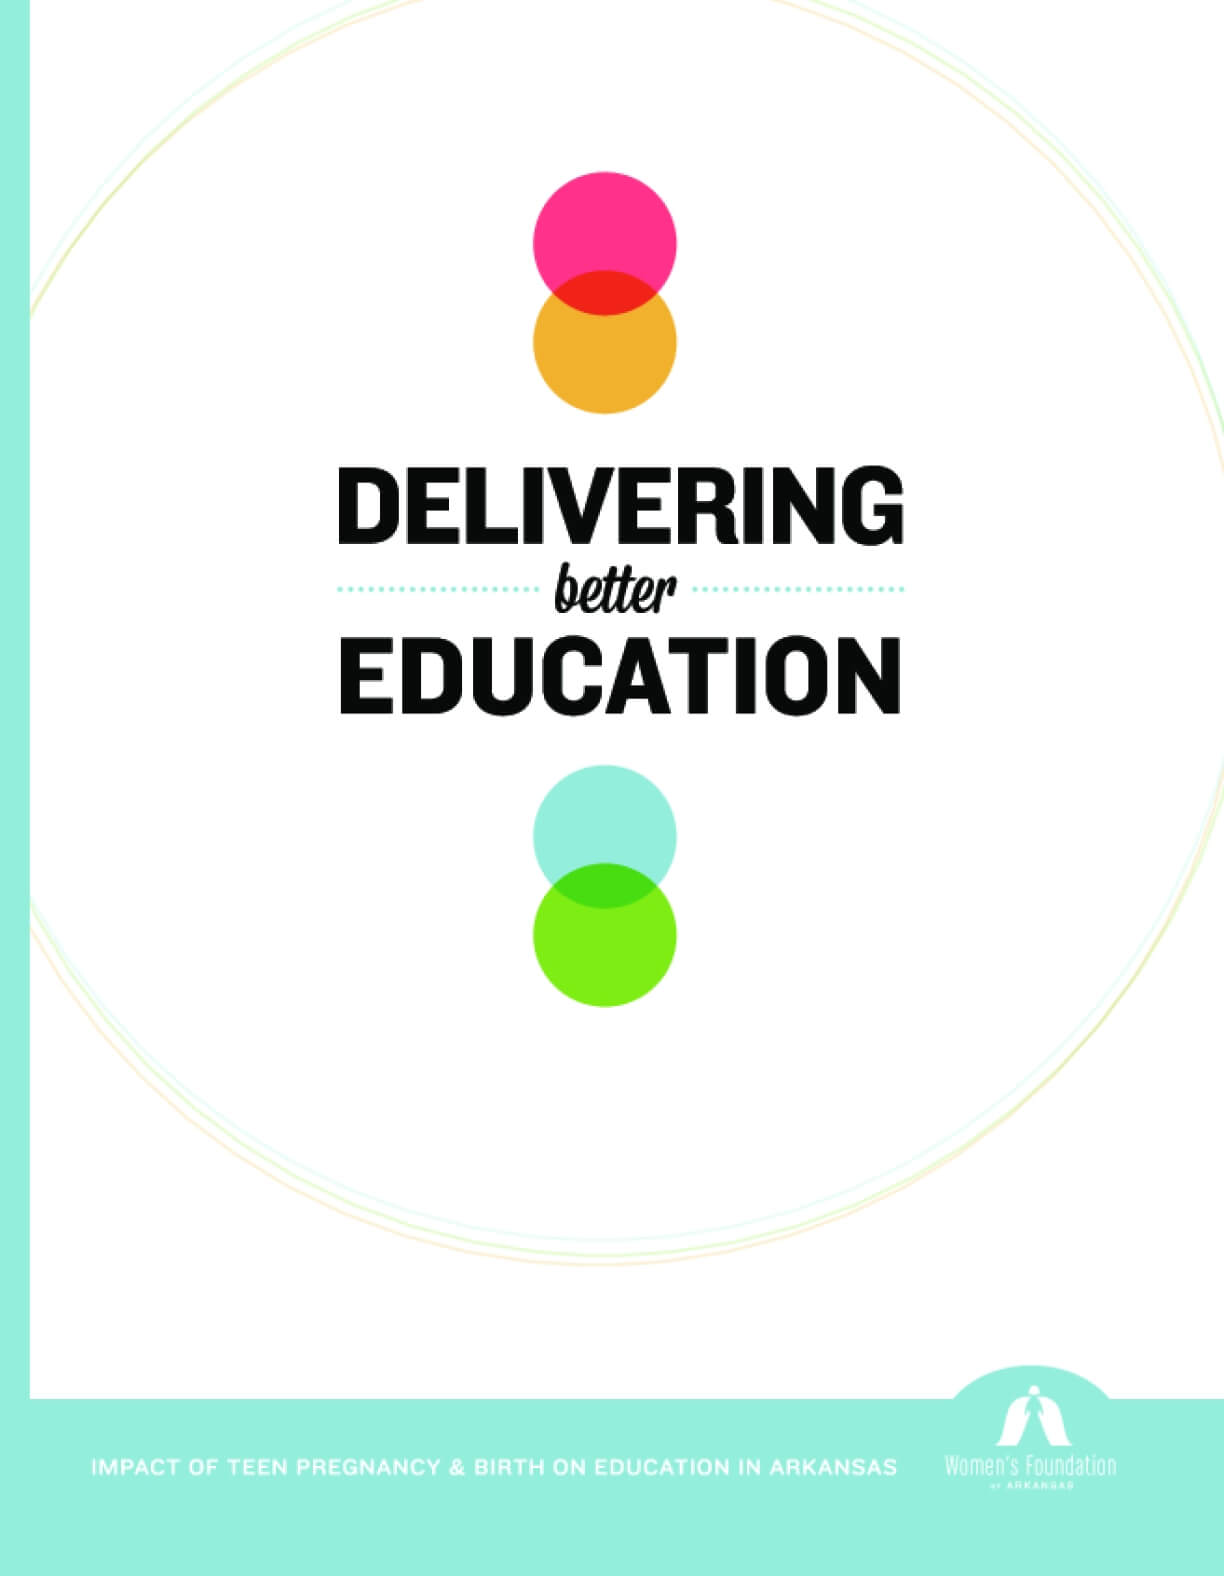 Delivering Better Education: Impact of Teen Pregnancy & Birth on Education in Arkansas